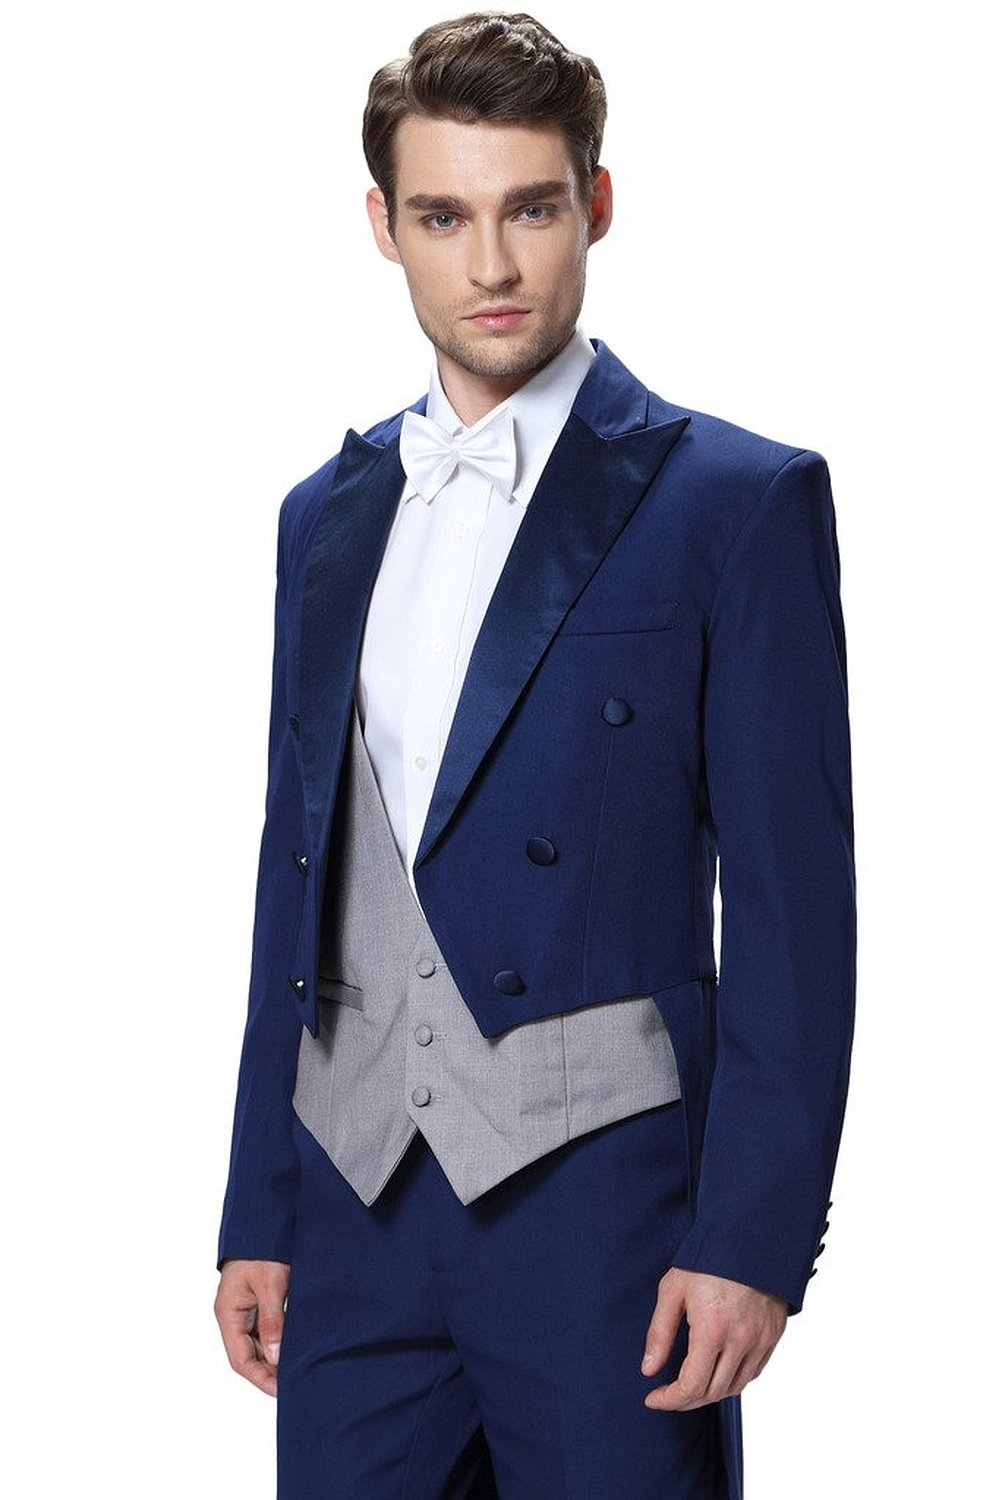 Men's Royal Blue Suits With Pants Formal Dress Mens Stage Wear ...